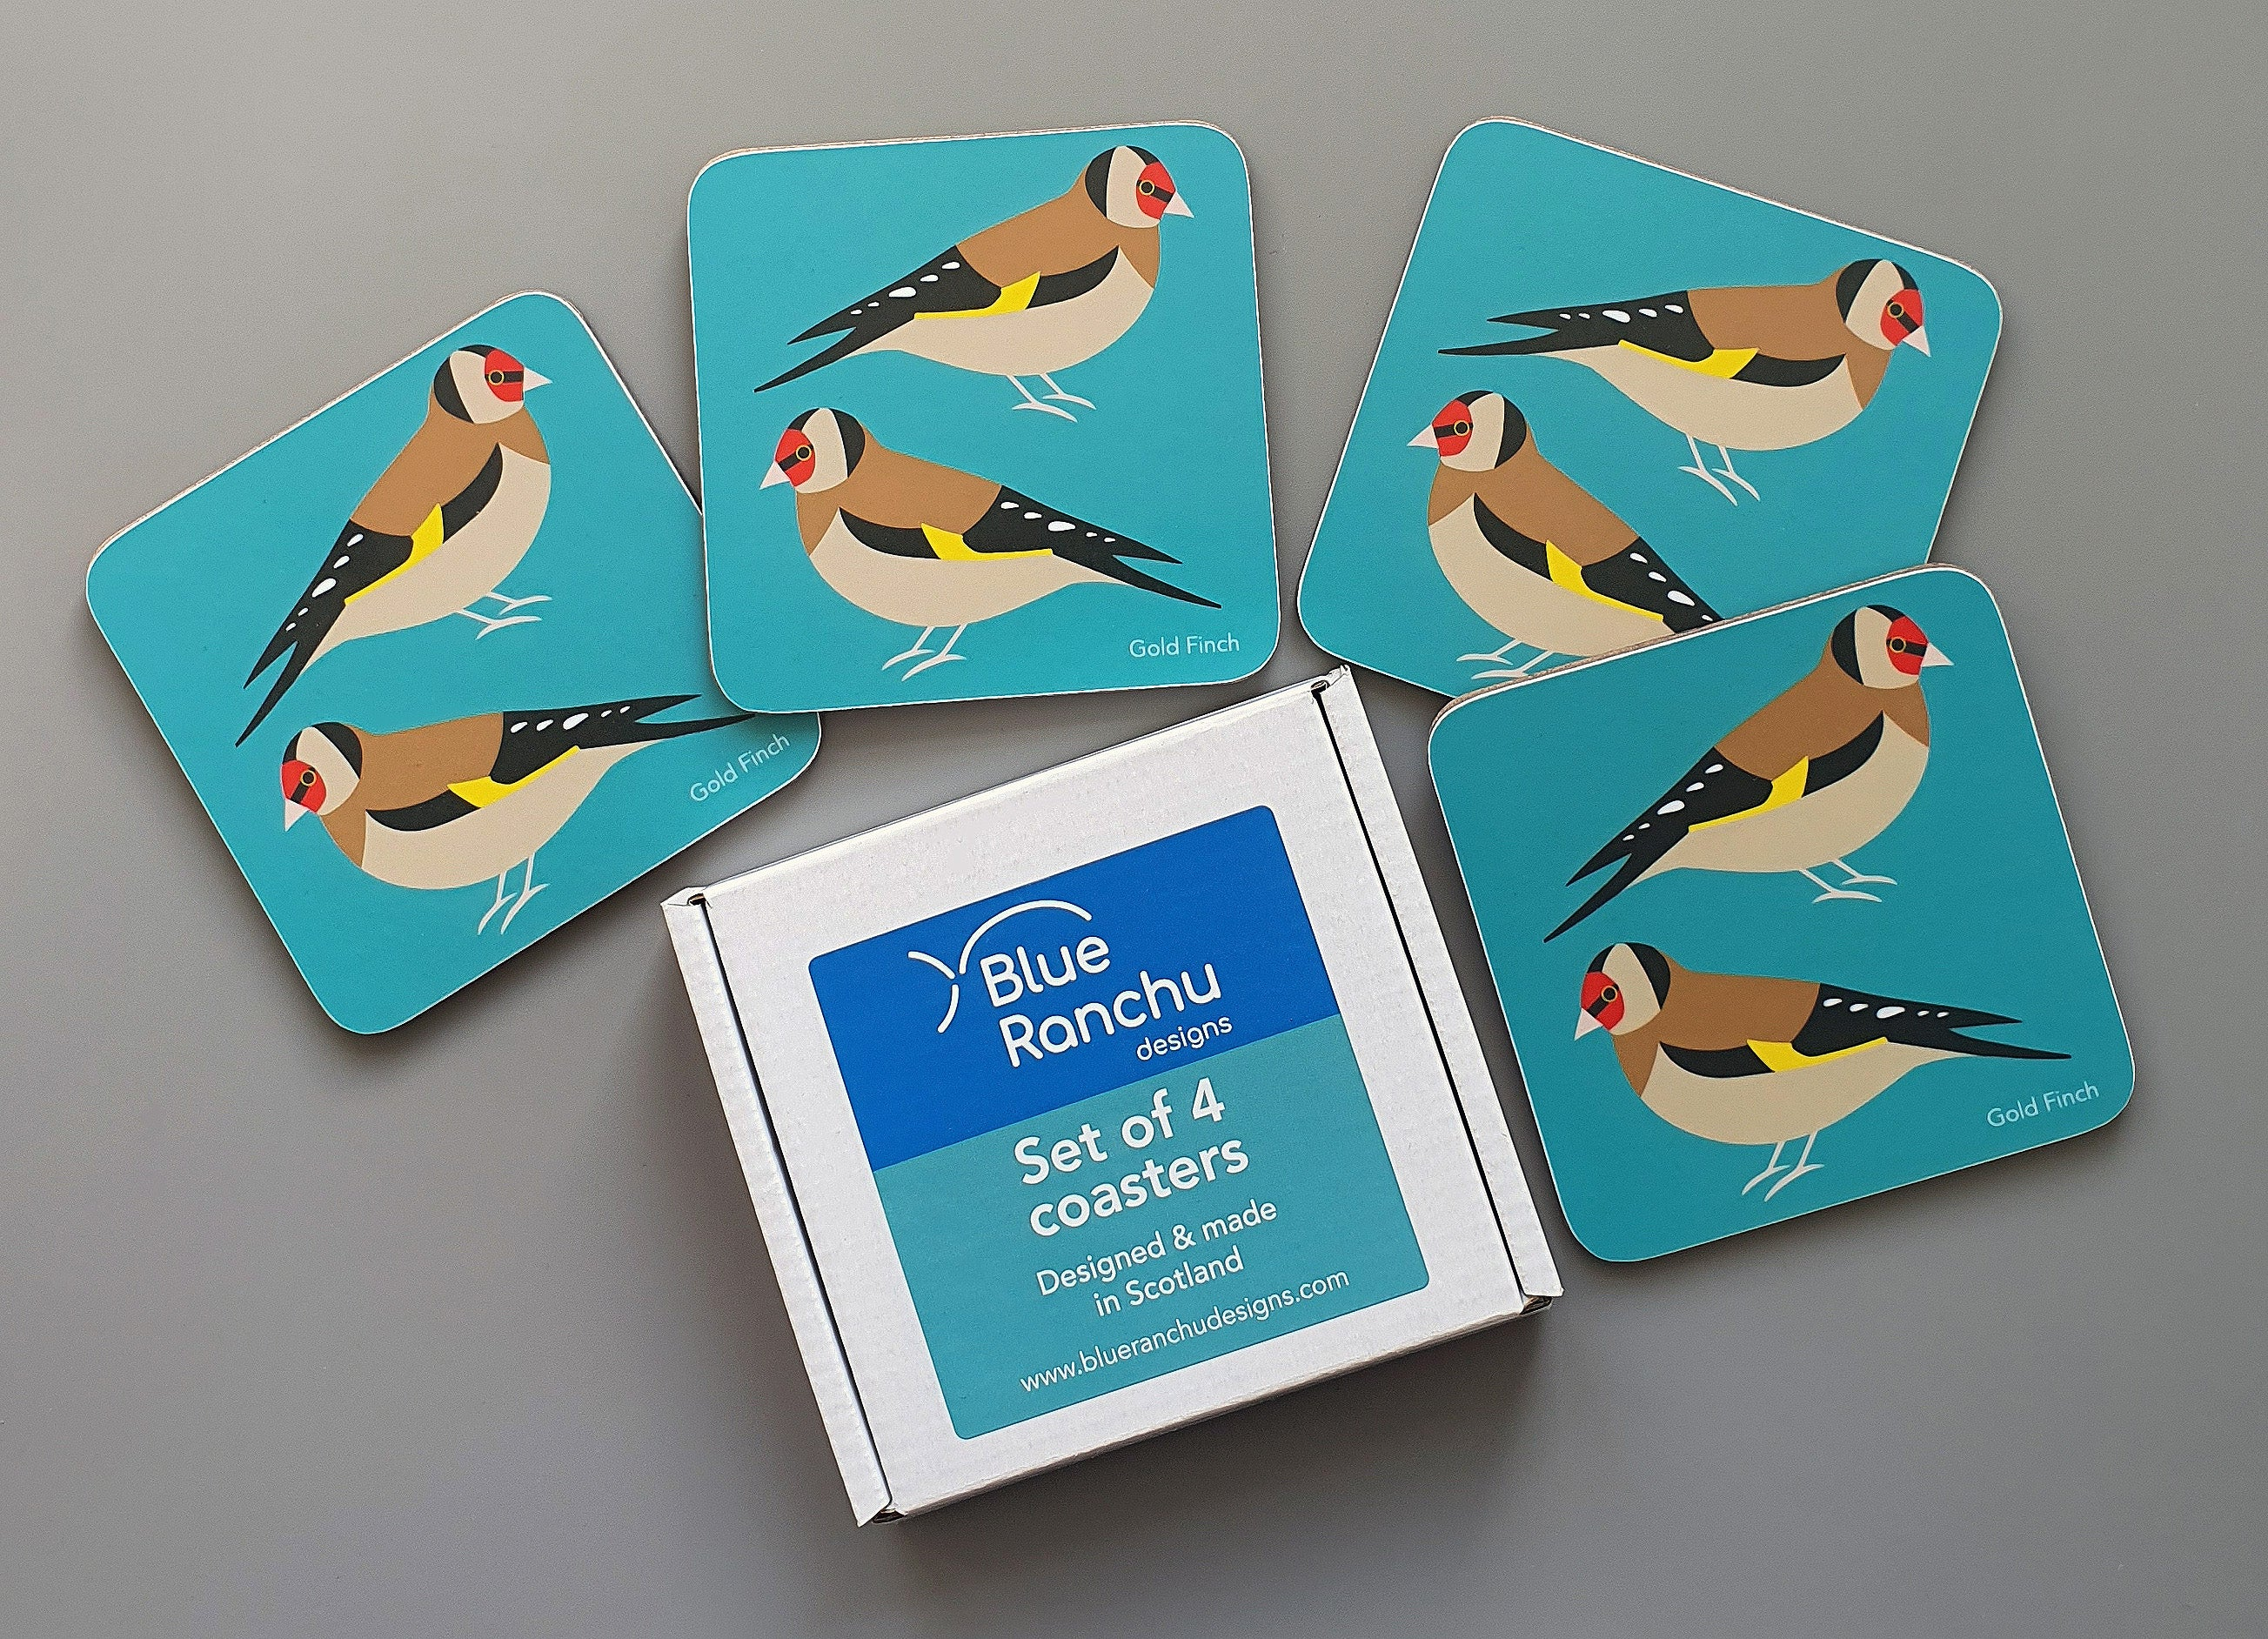 Set of 4 Gold Finch coasters in cardboard gift box